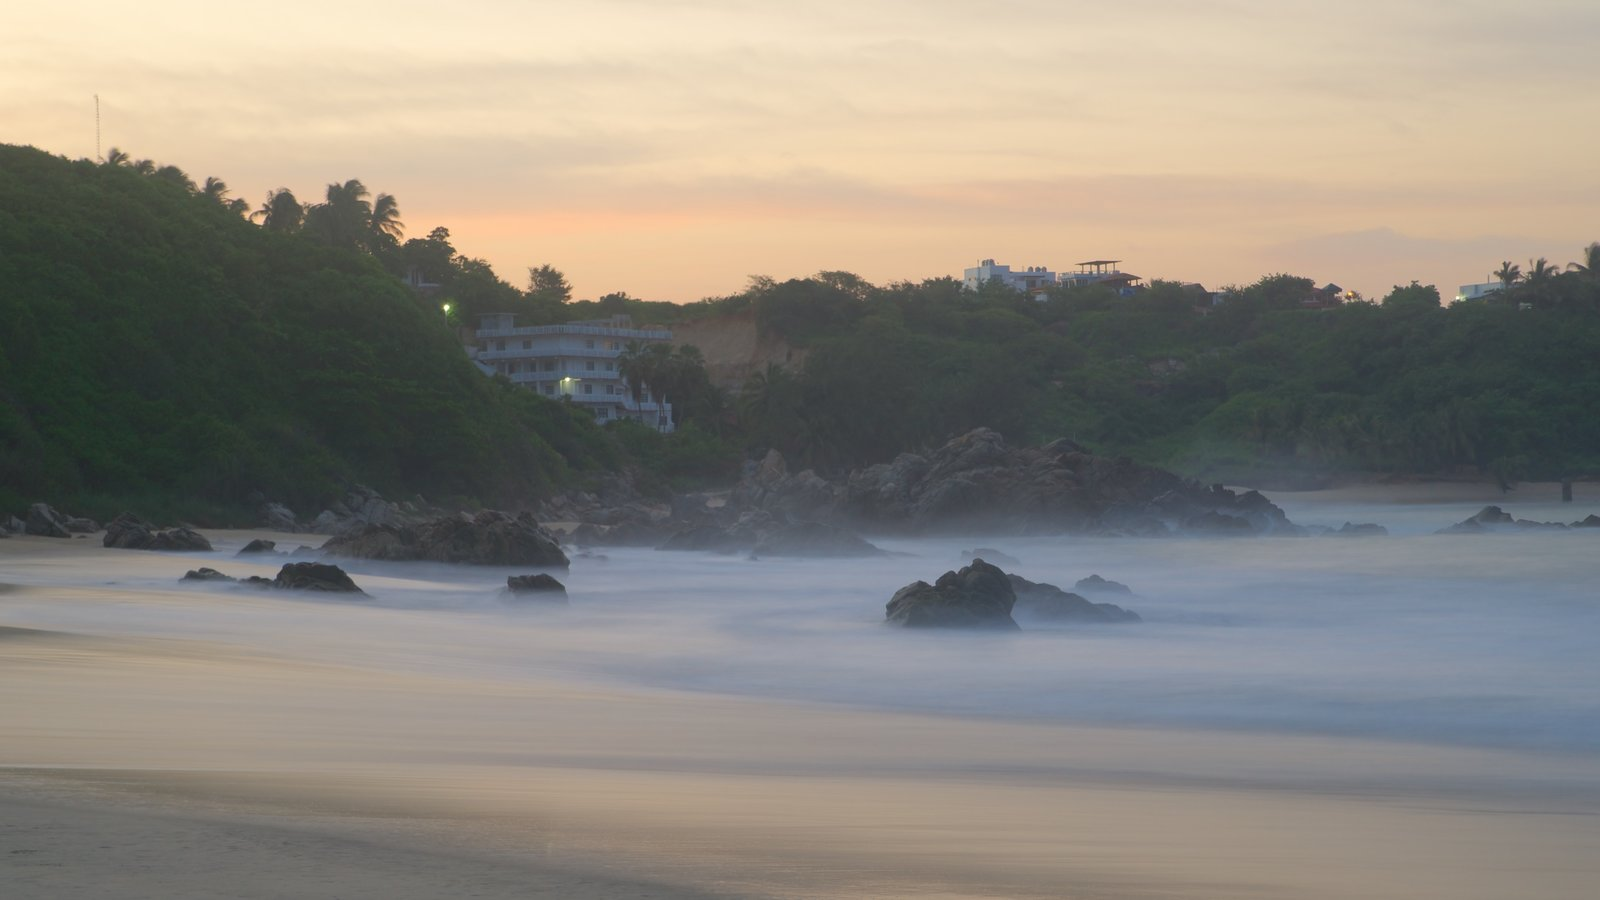 Bacocho Beach featuring a sunset, rocky coastline and a beach